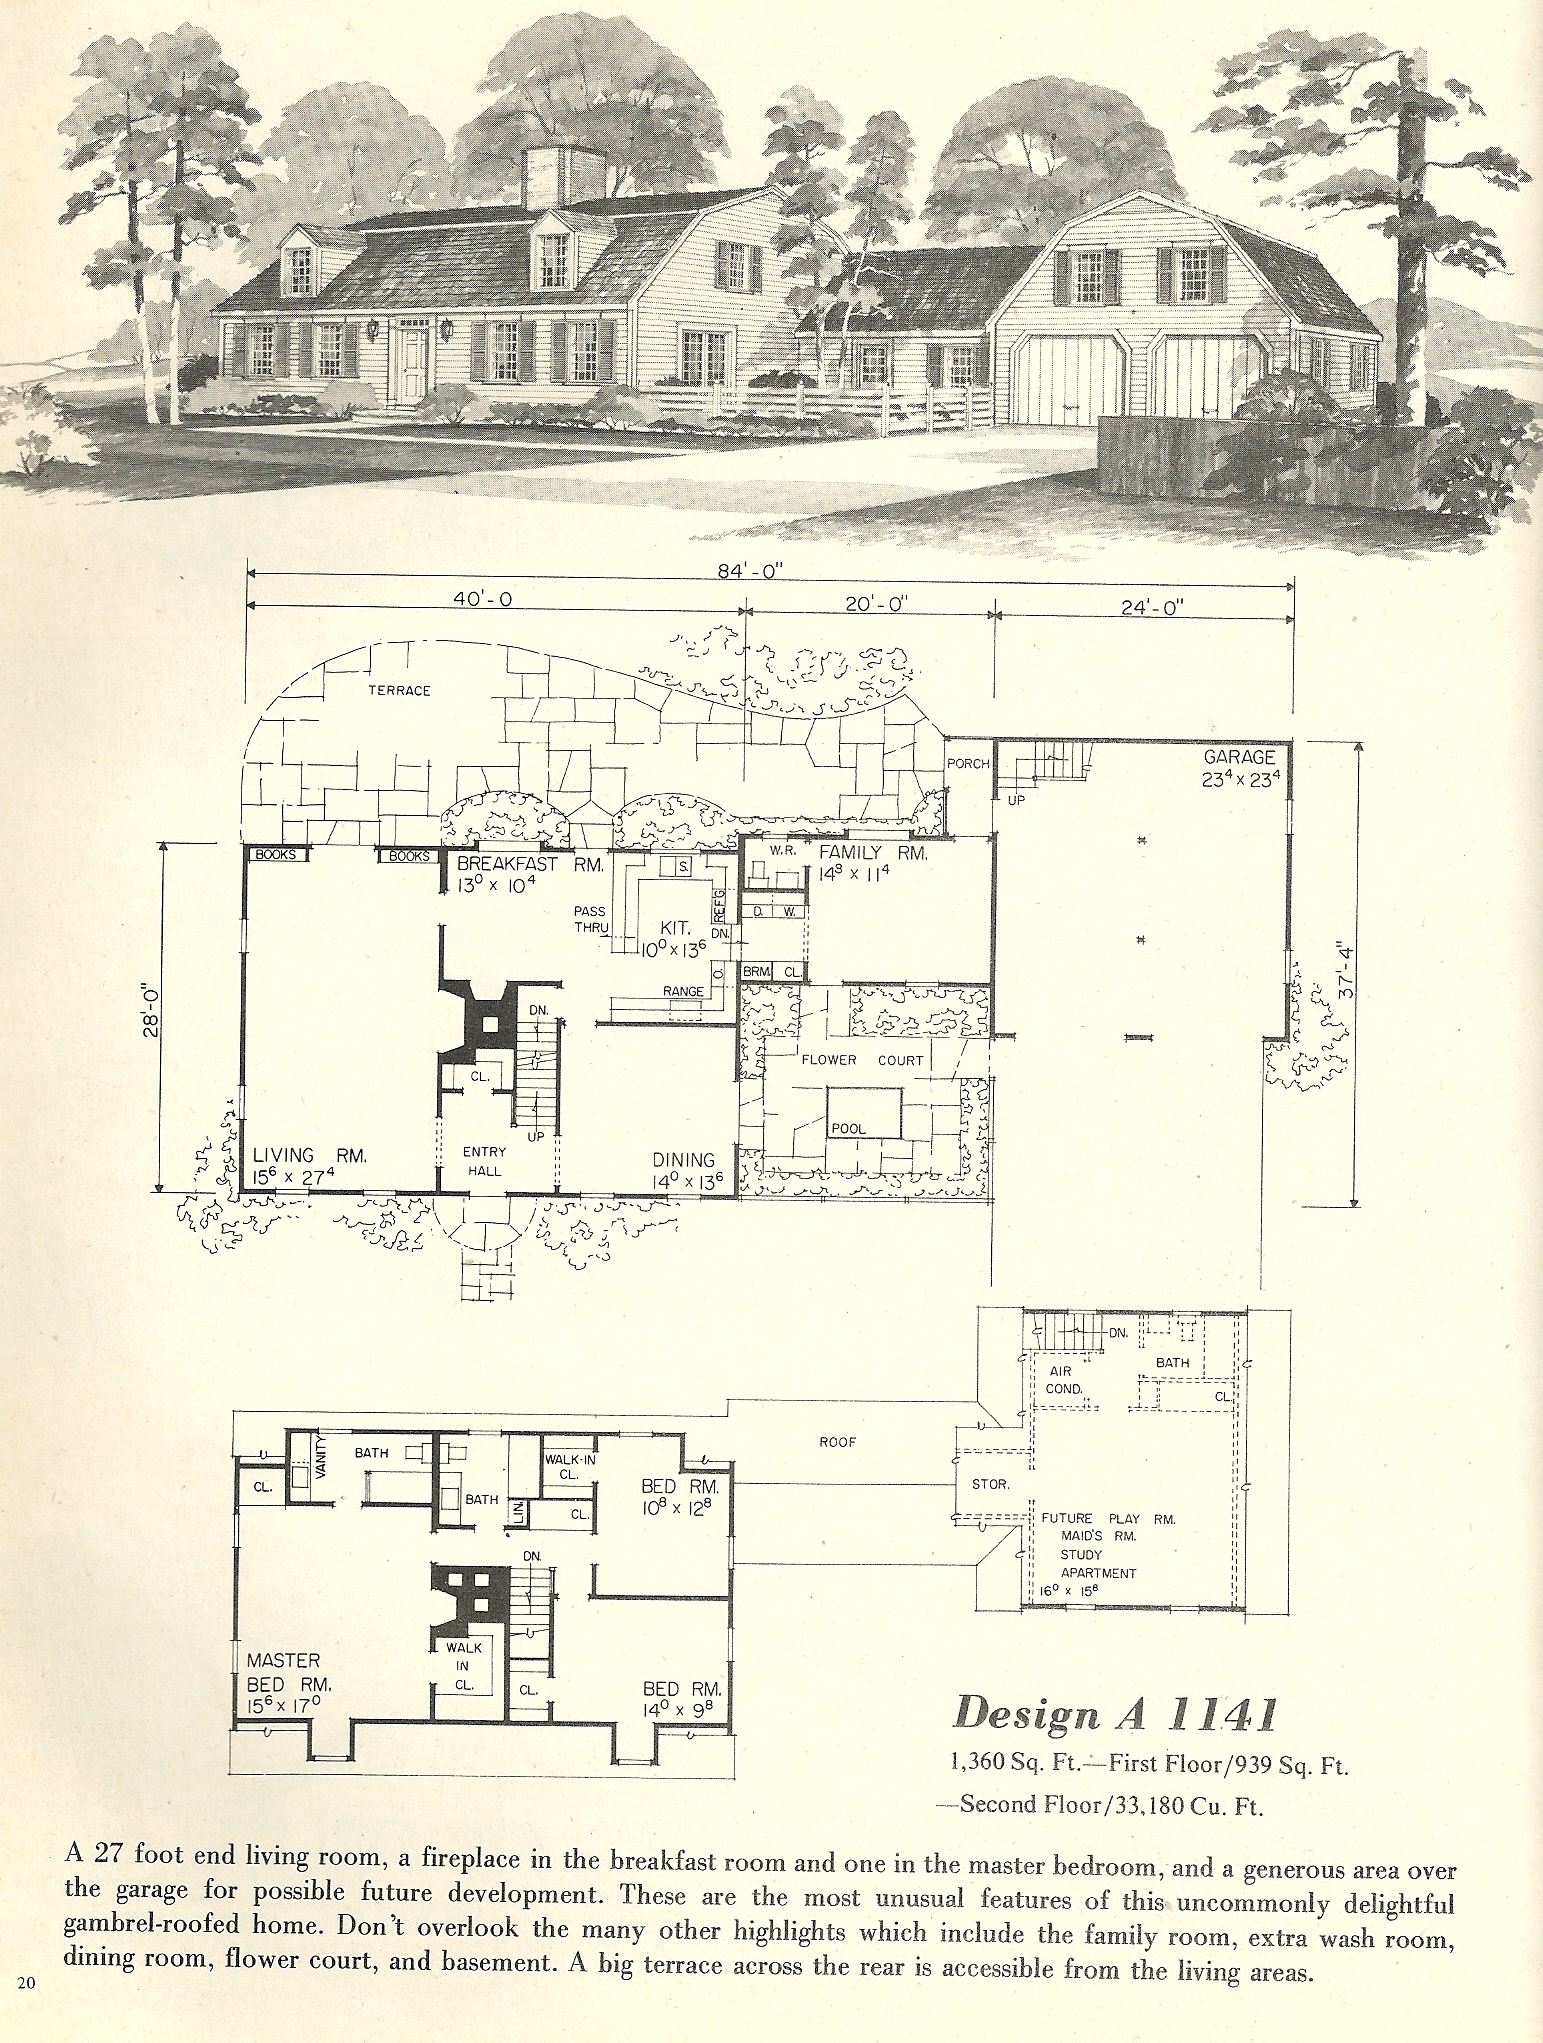 Vintage house plans 1970s new england gambrel roof homes for Vintage floor plans